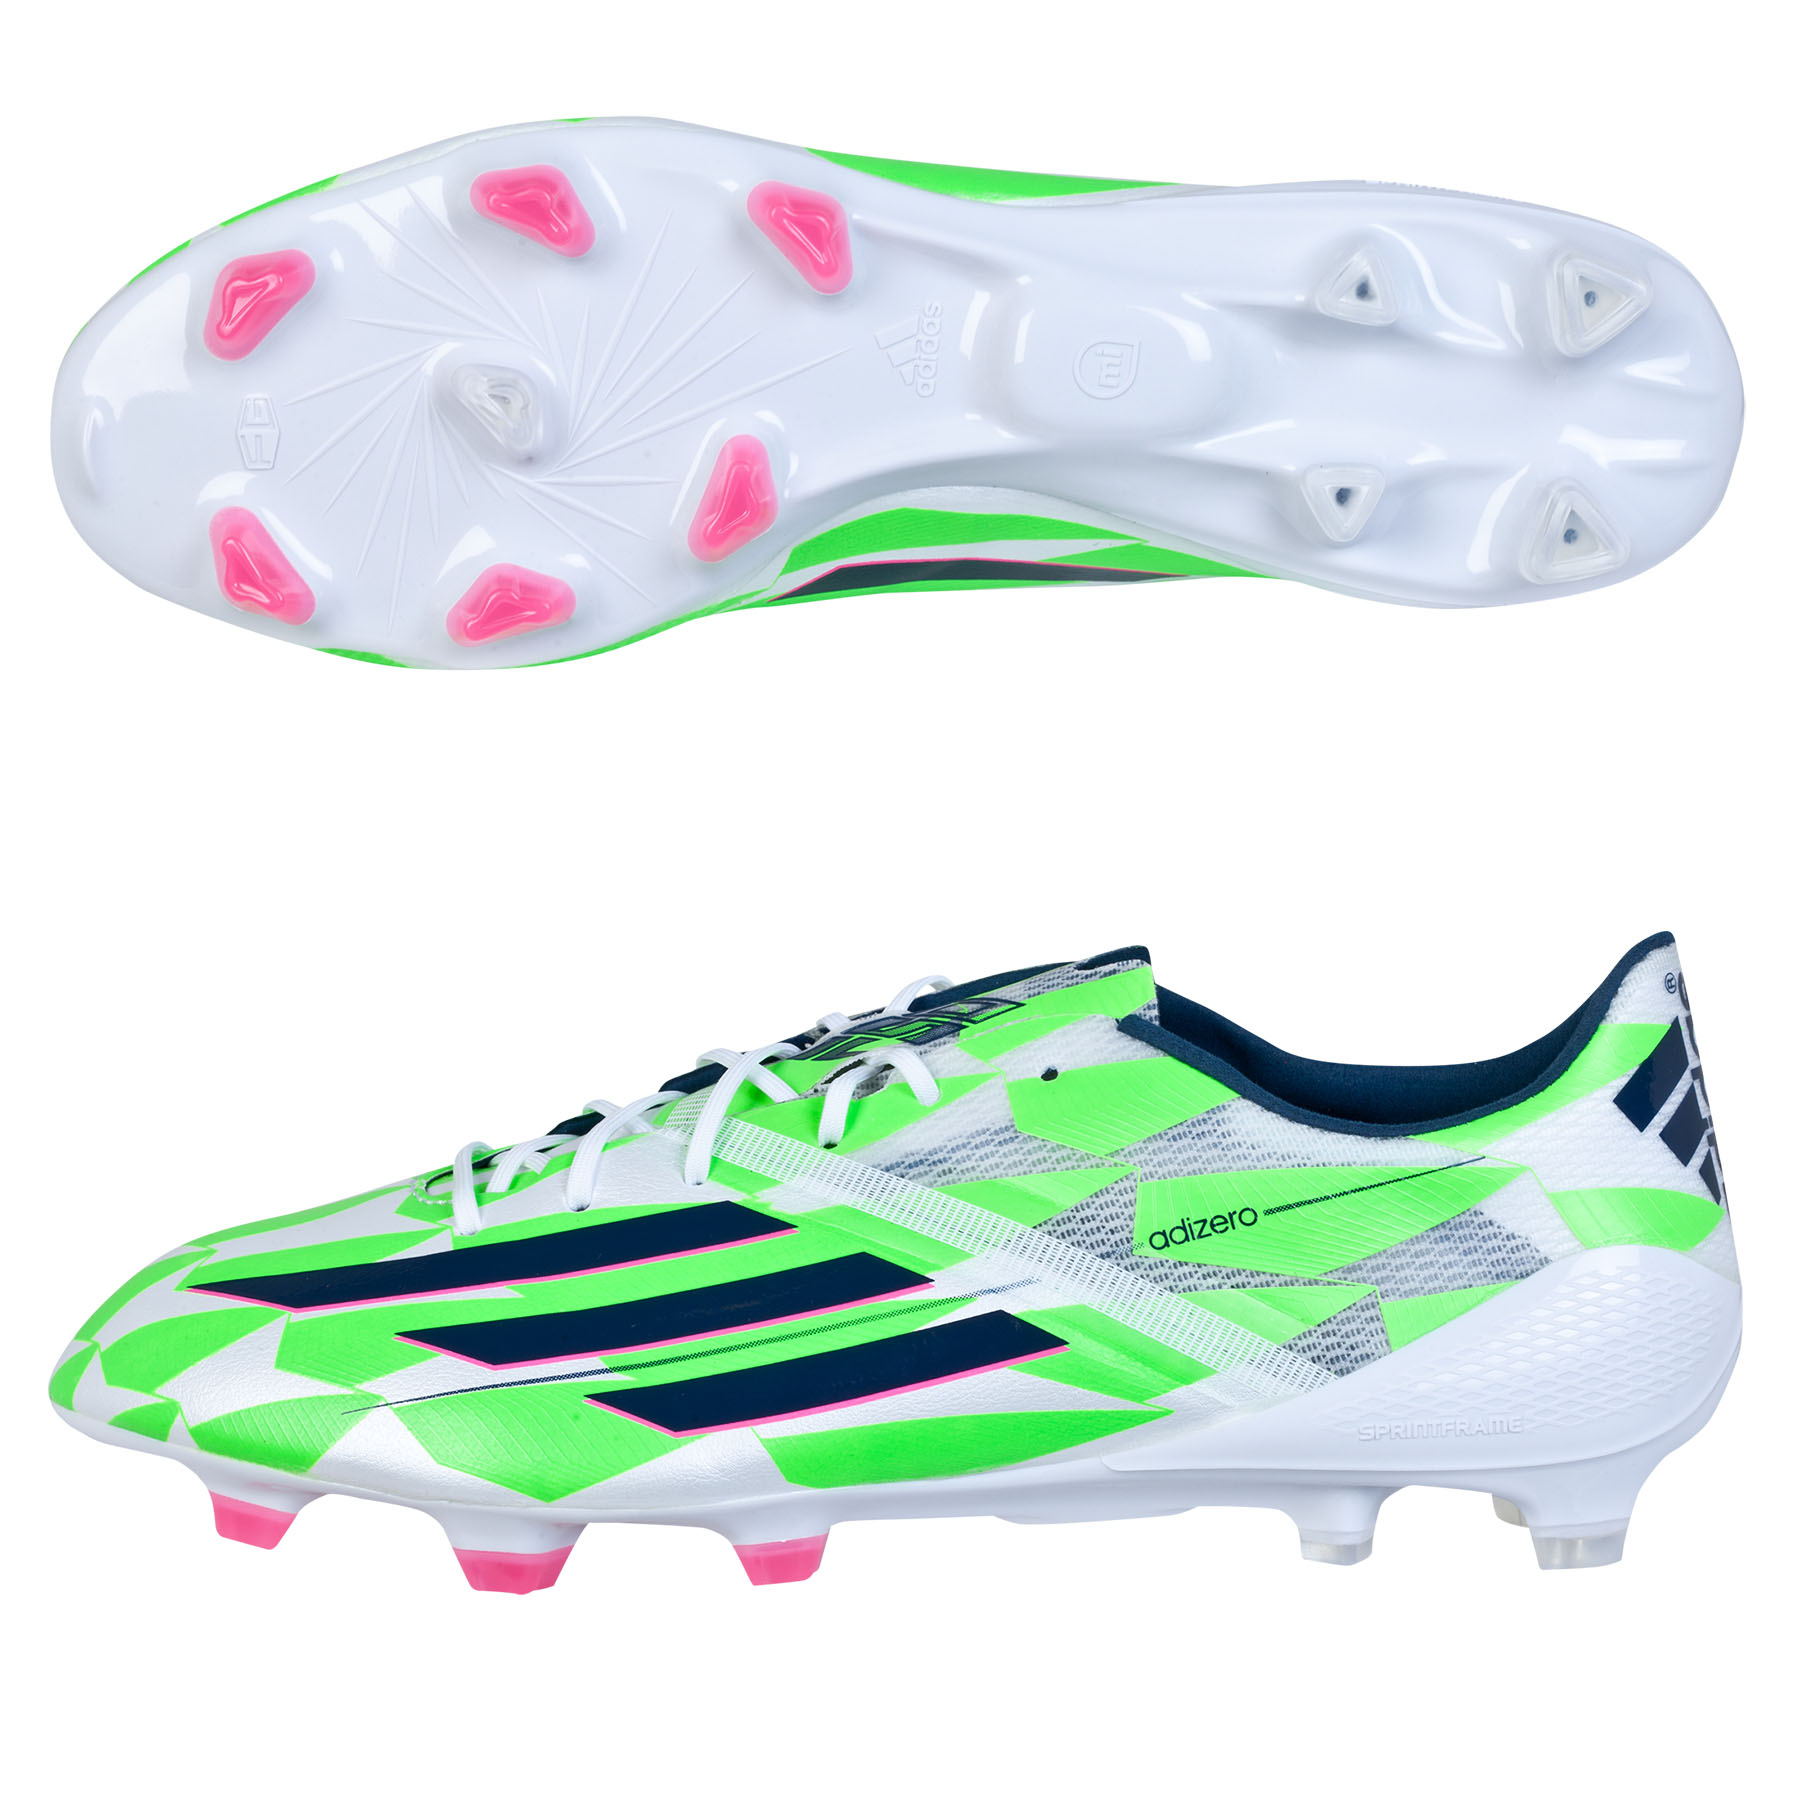 F50 adizero FG White Supernatural